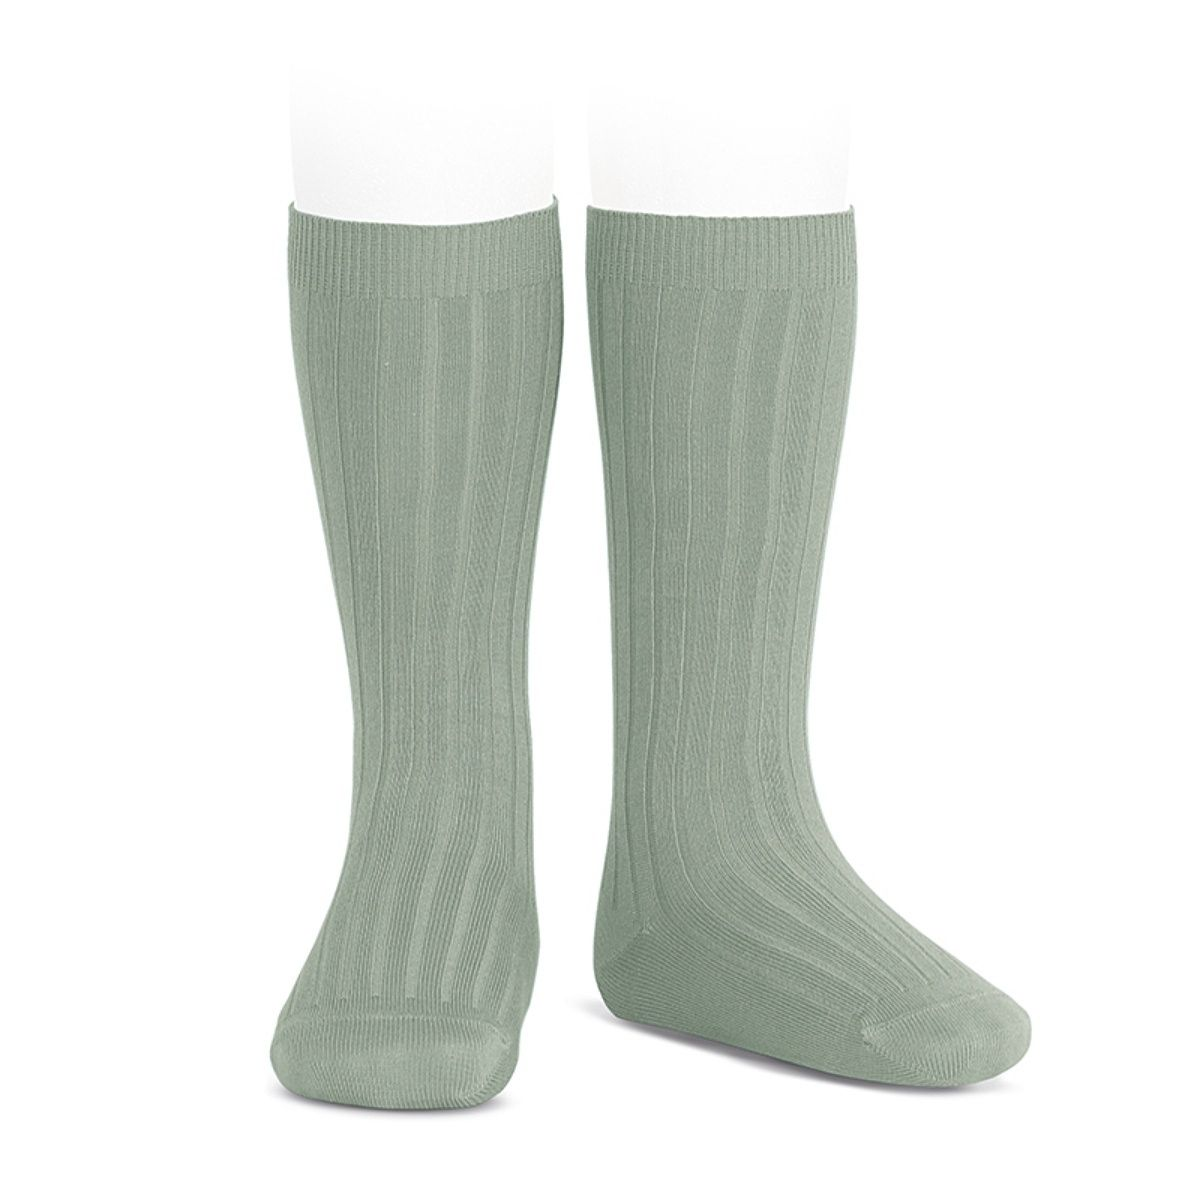 2019 hot sale best quality for great discount Wide Ribbed Cotton Knee High Socks sage